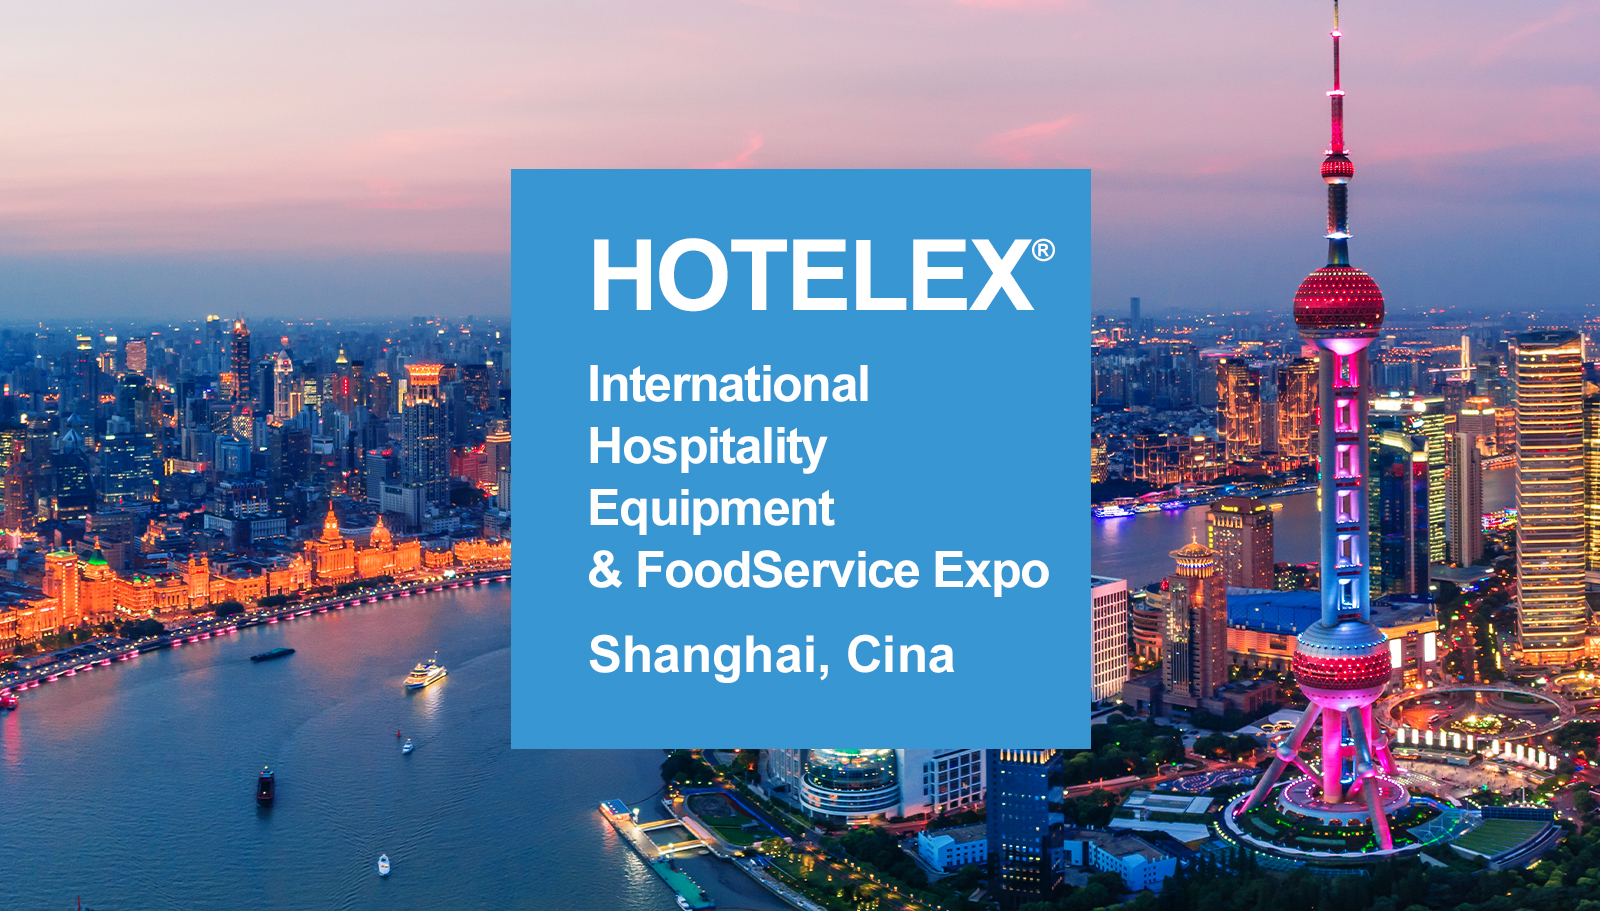 Cmatic fittings for Food & Beverage showcased at HOTELEX® Shanghai International 2021